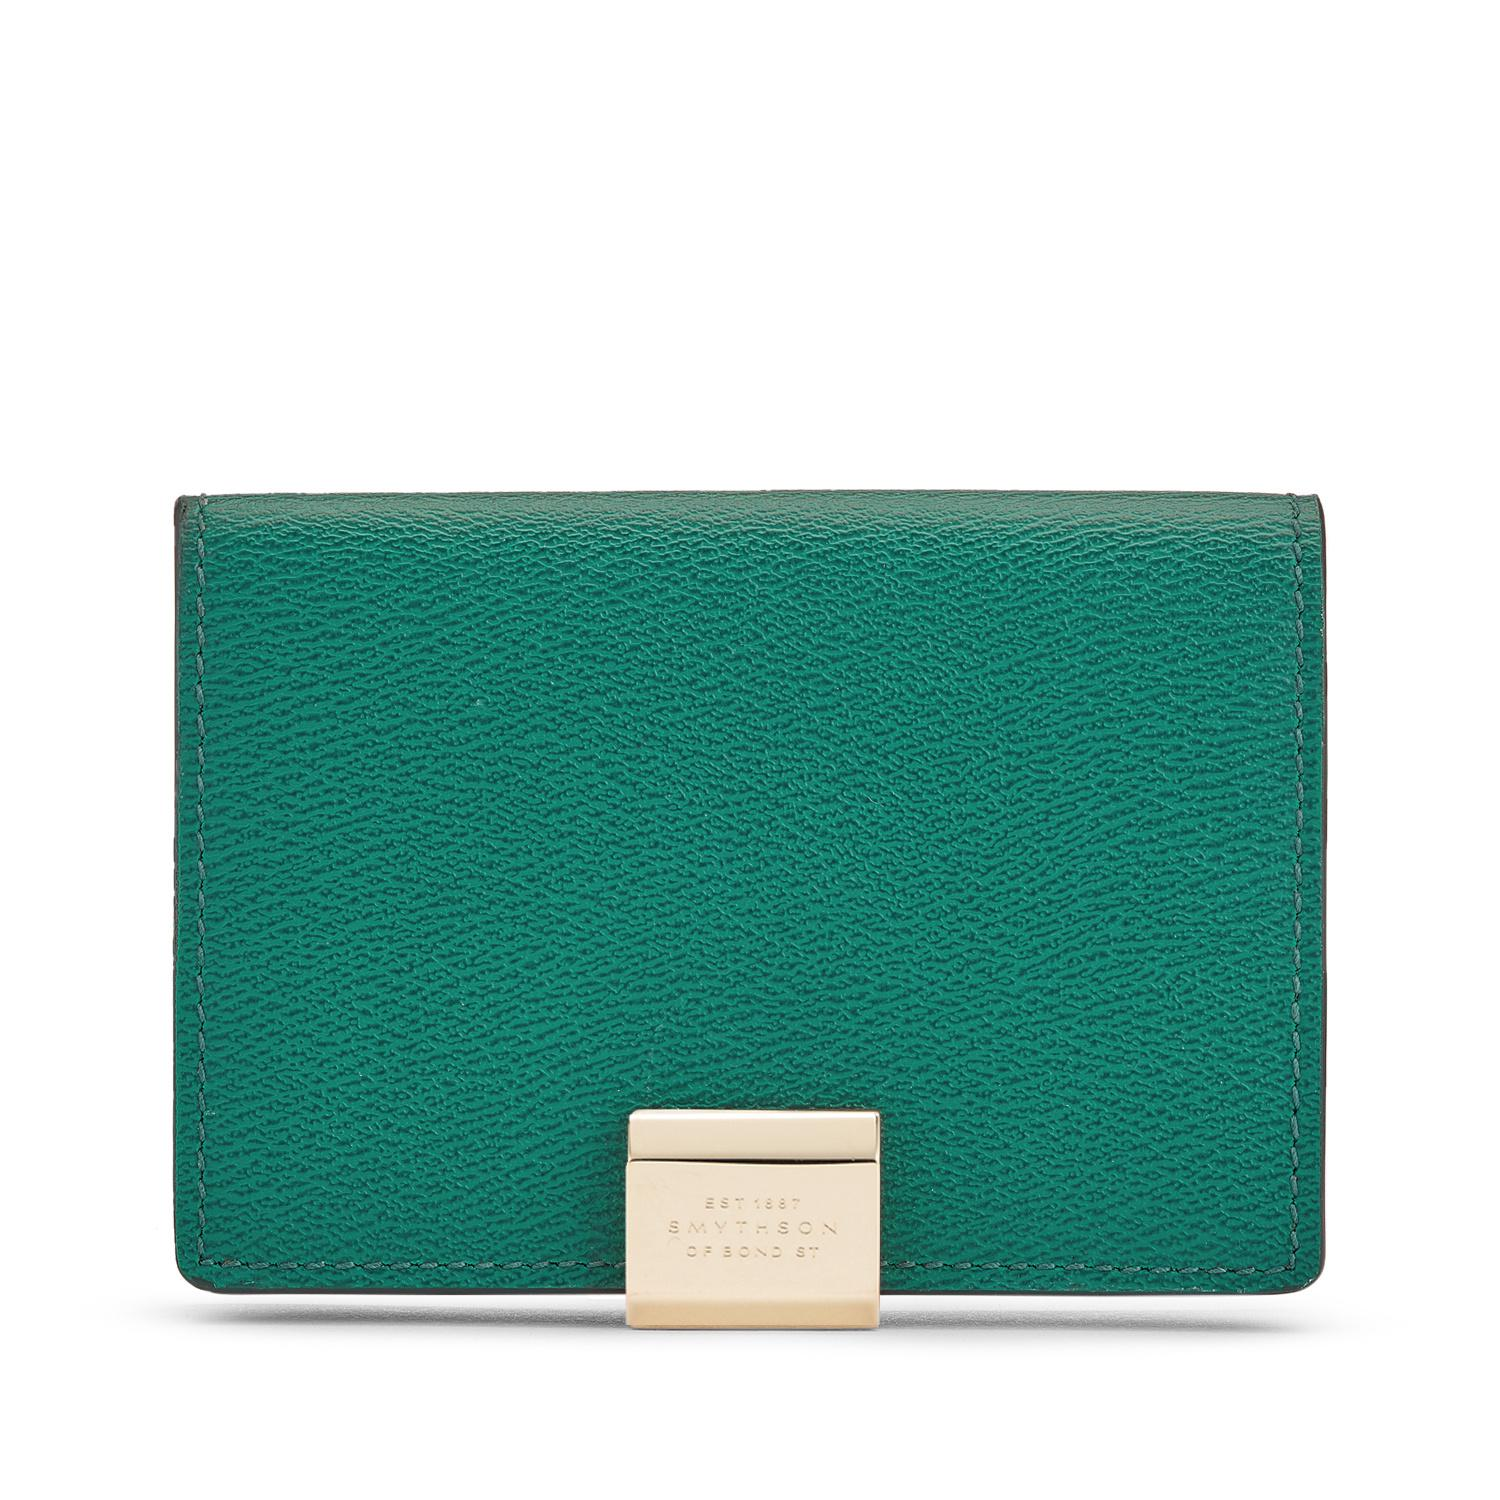 Smythson Business And Credit Card Case in Green - Lyst